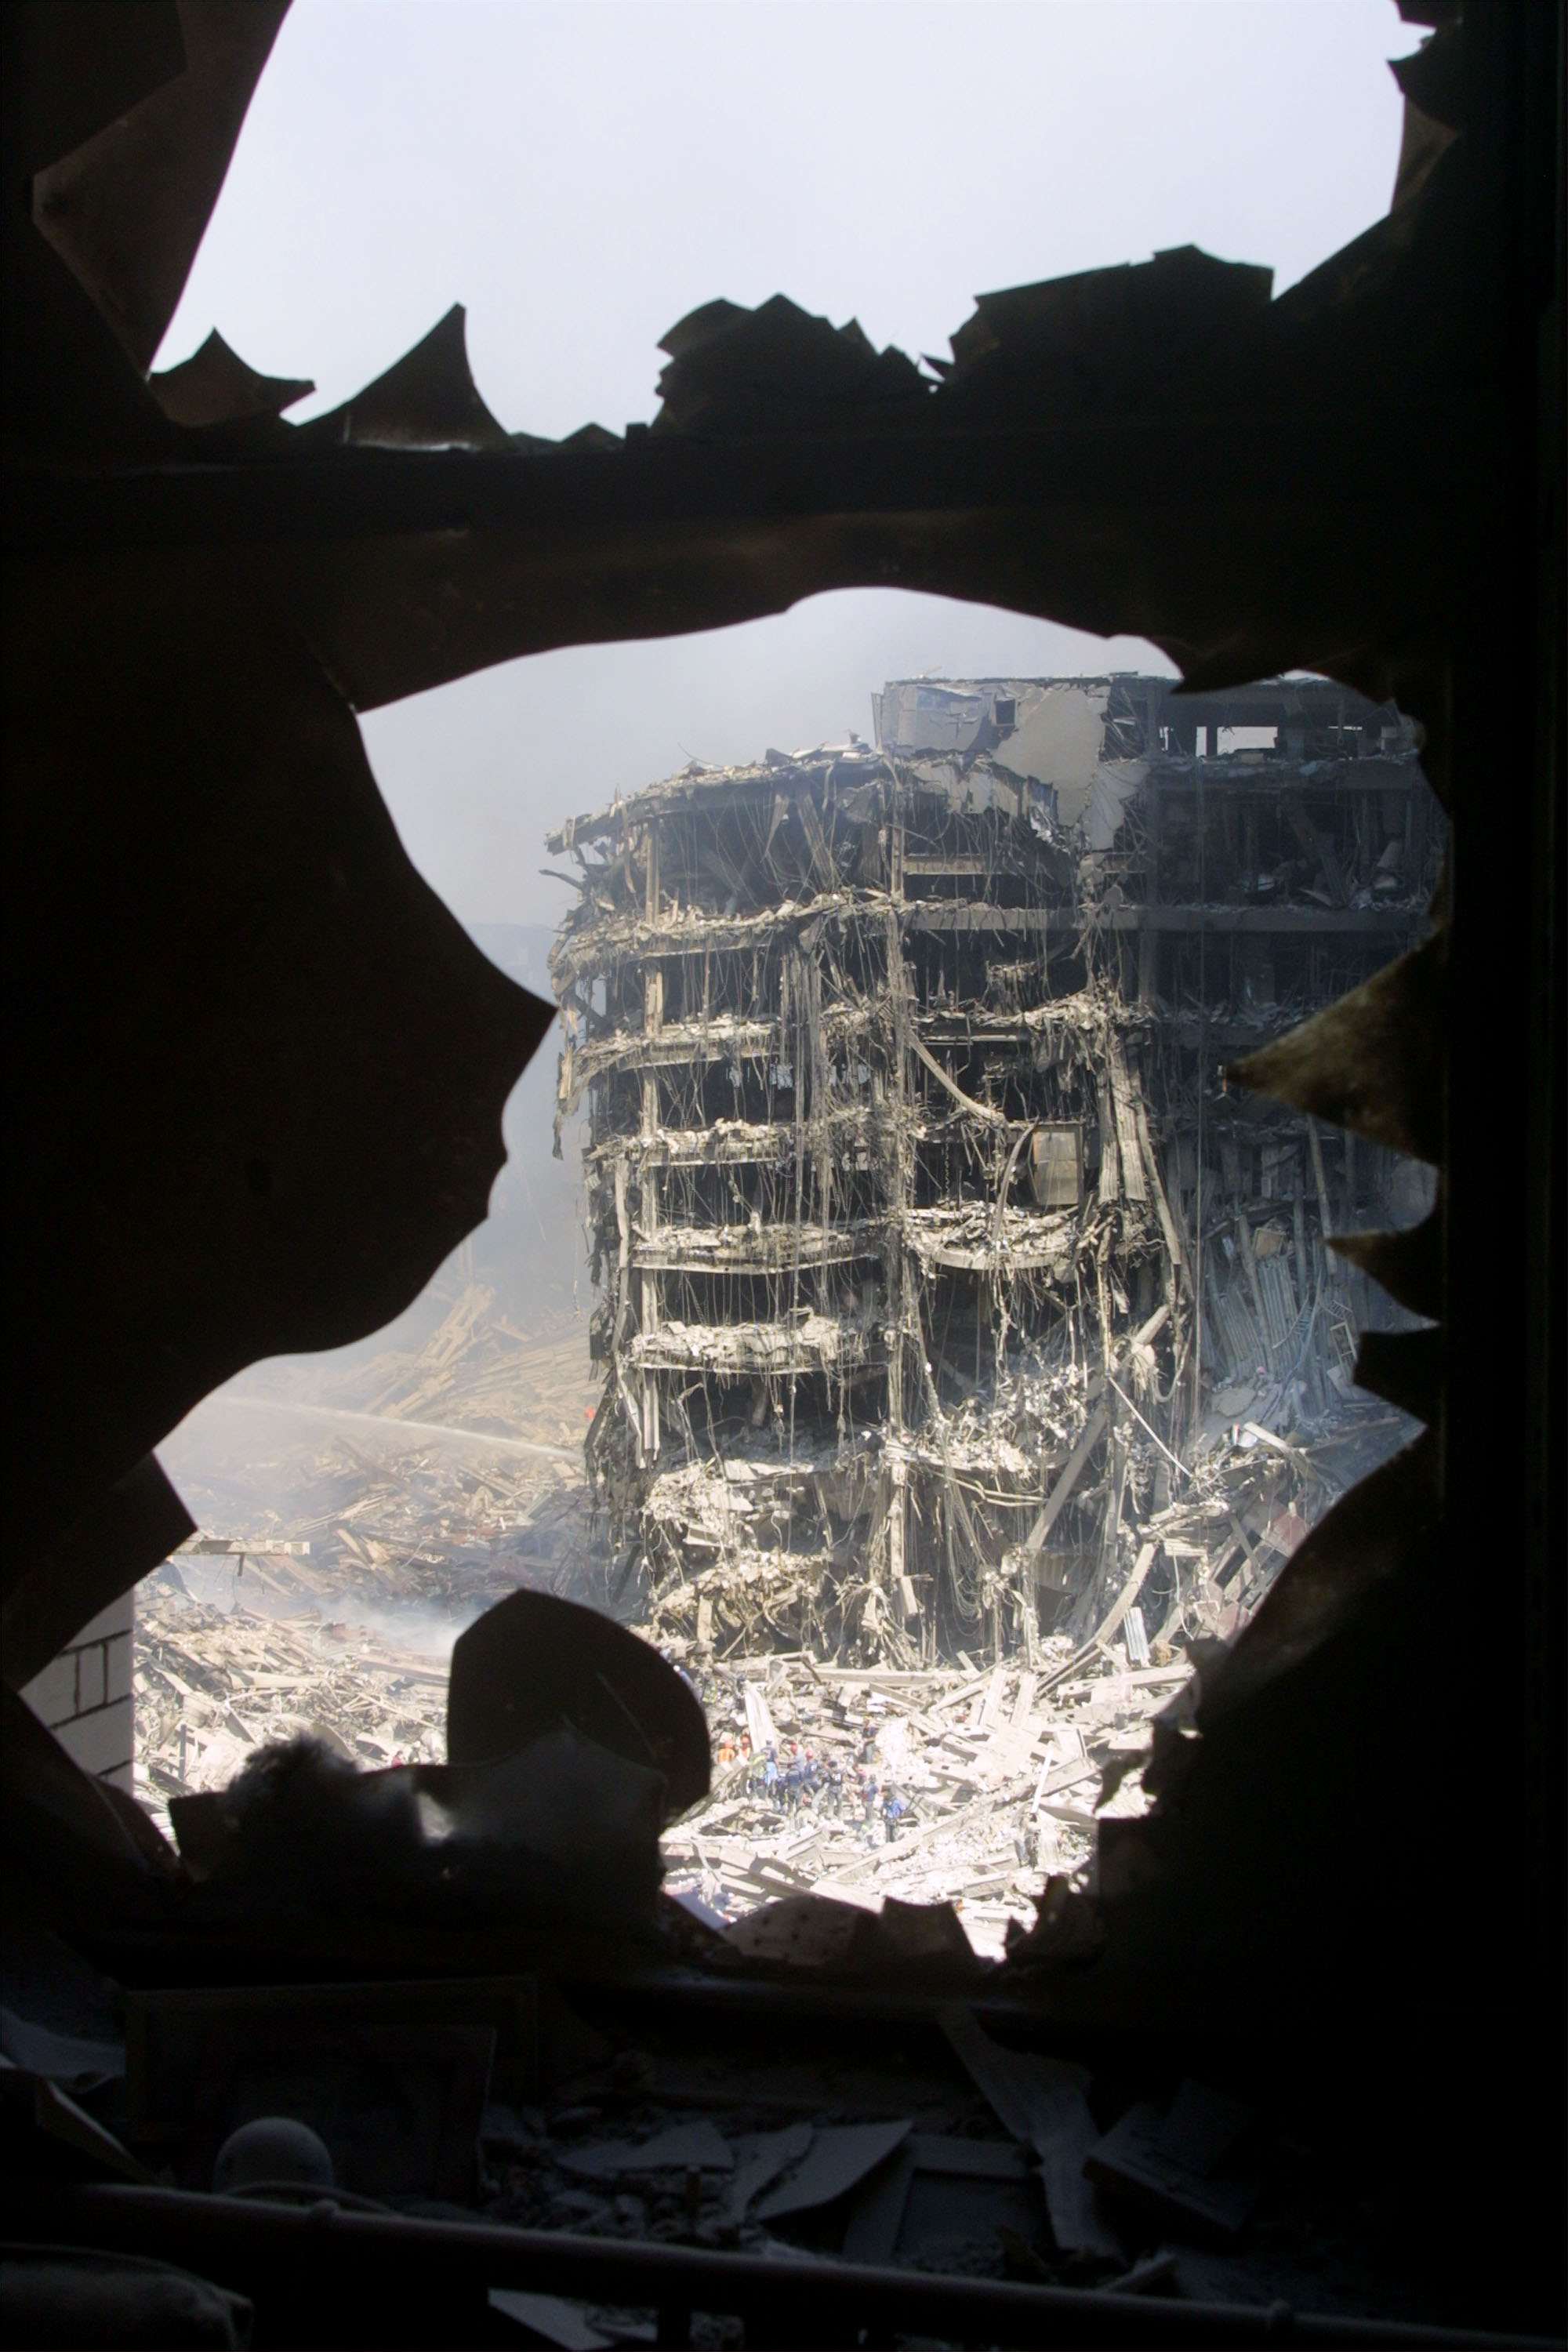 Rescue Workers Search Through WTC Rubble. Credit Mario Tama, courtesy of Getty Images